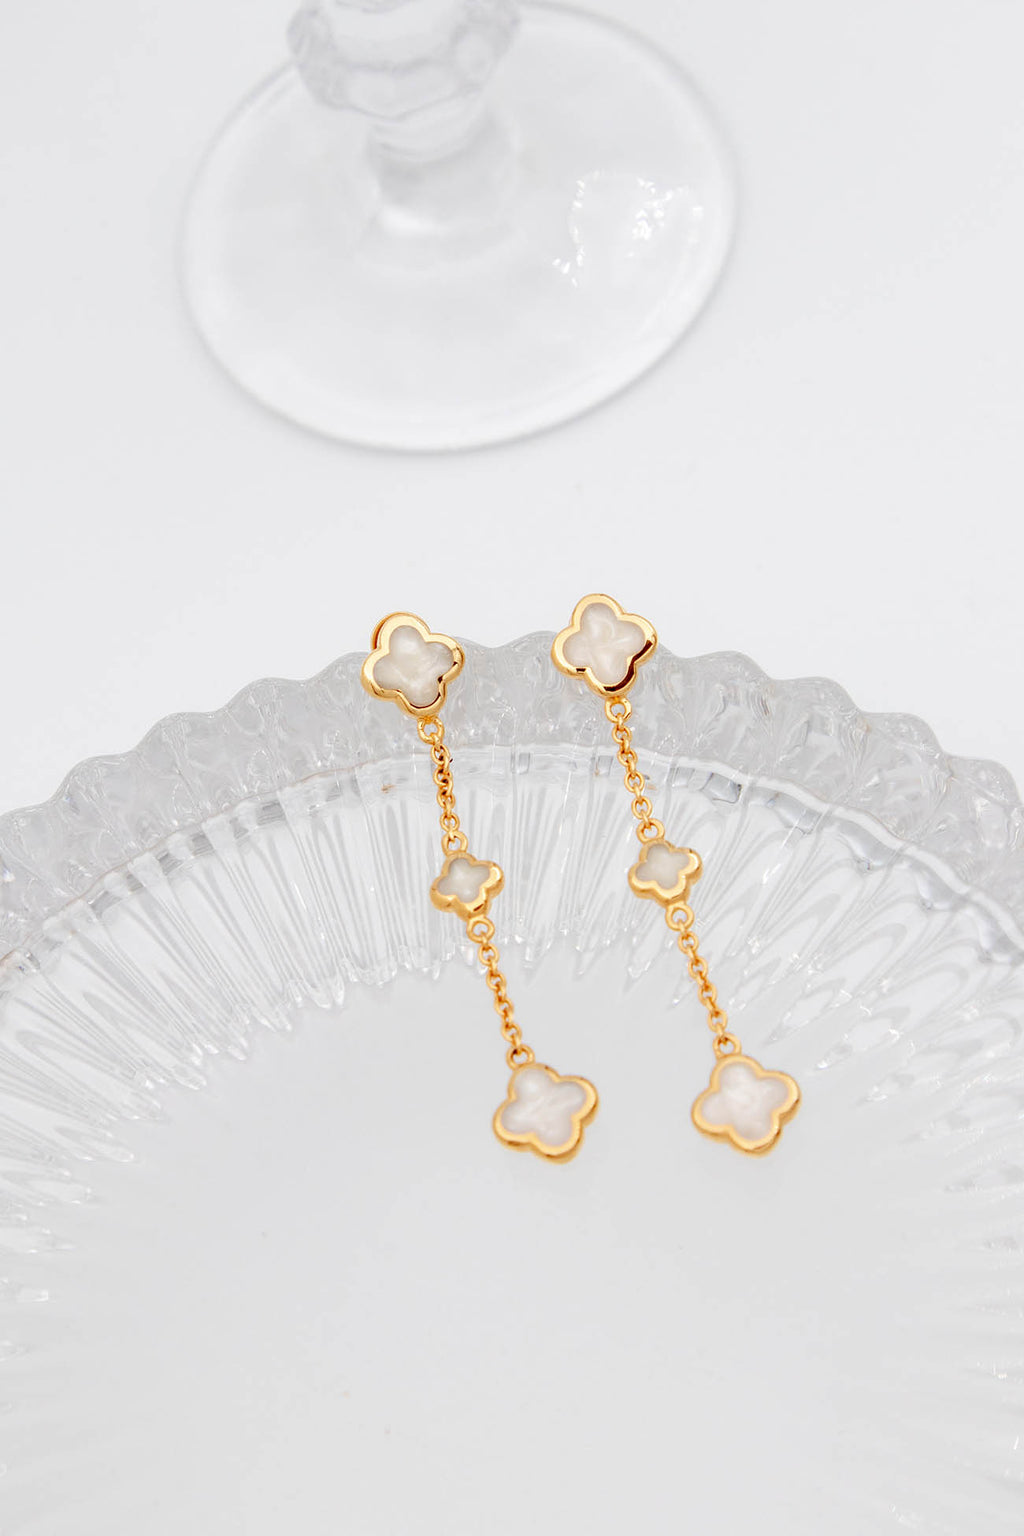 FLEUR ROYALE EARRINGS - Gold vermeil